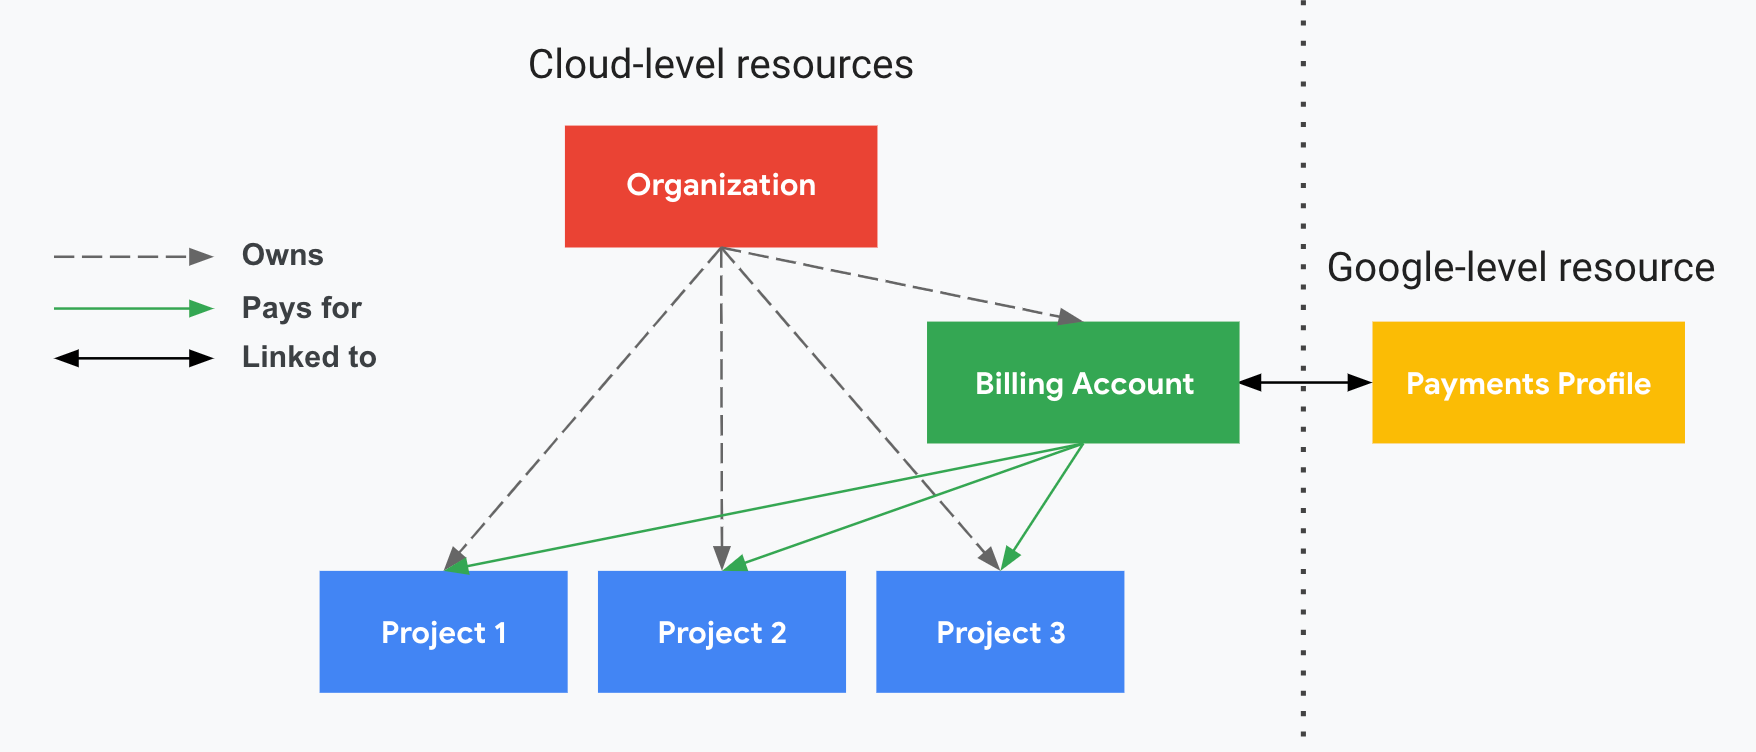 Describes how projects relate to your Cloud Billing account,          the organization, and your payments profile. One side shows your          Cloud-level resources (organization, Cloud Billing account and          associated projects) and the other side, divided by a vertical dotted          line, shows your Google-level resource (a payments profile). Your          projects are paid for by your Cloud Billing account, which is          linked to your payments profile. The organization controls ownership          using IAM.